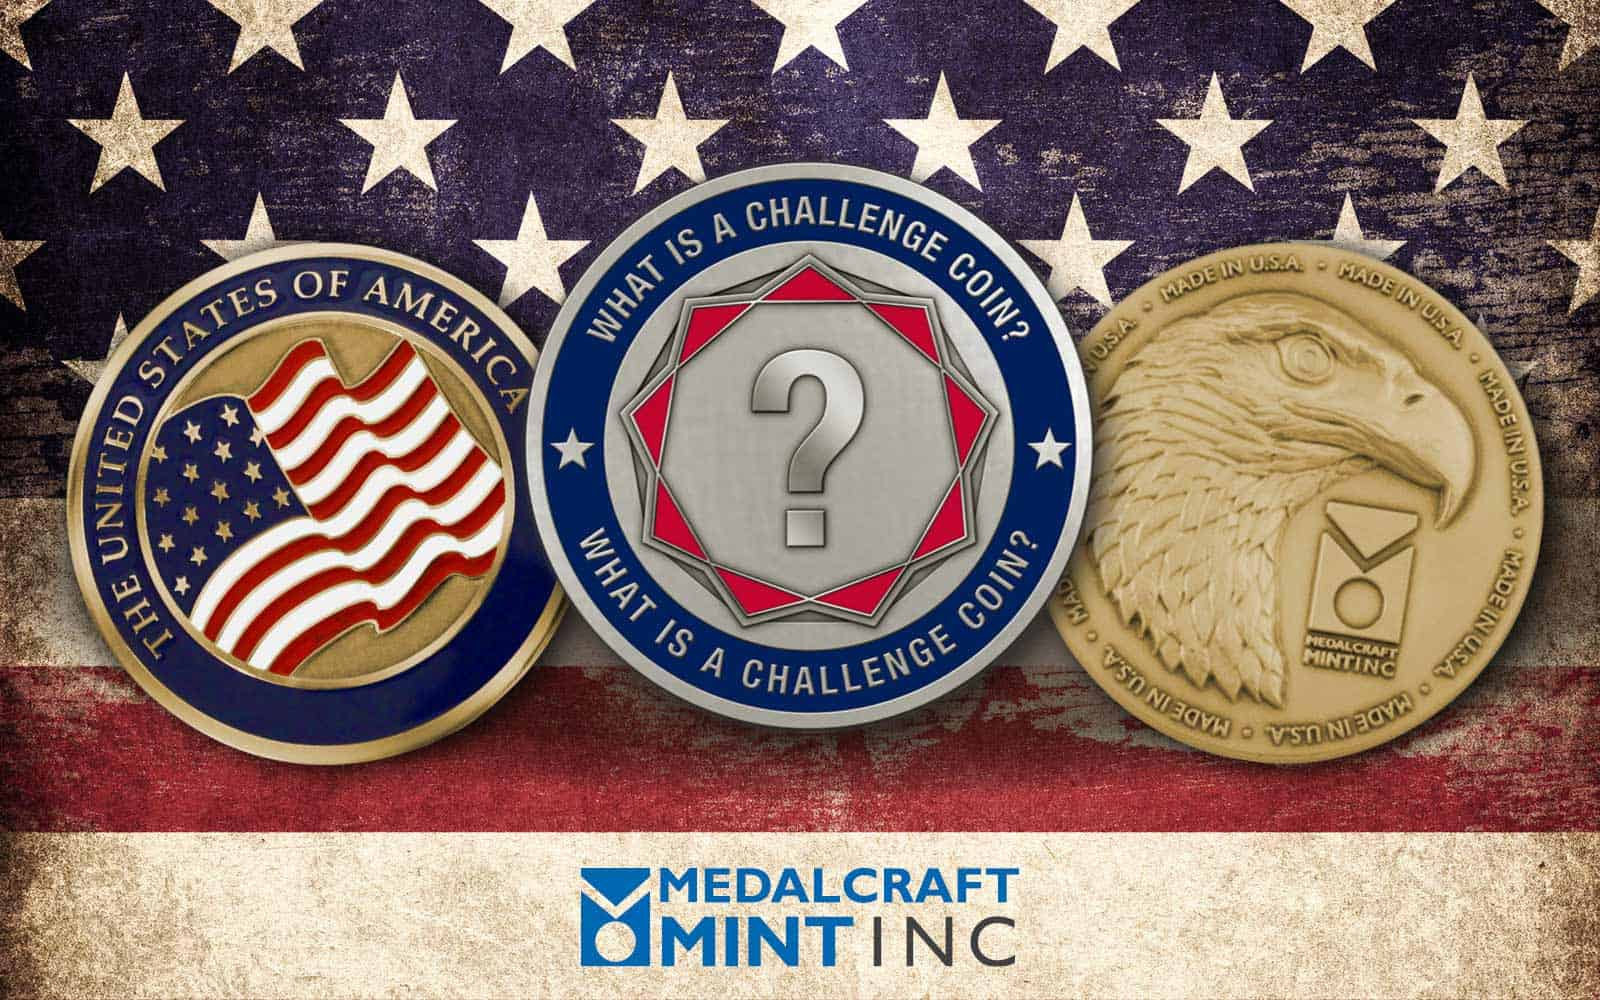 What is a Challenge Coin? It's Elementary for Medalcraft Mint